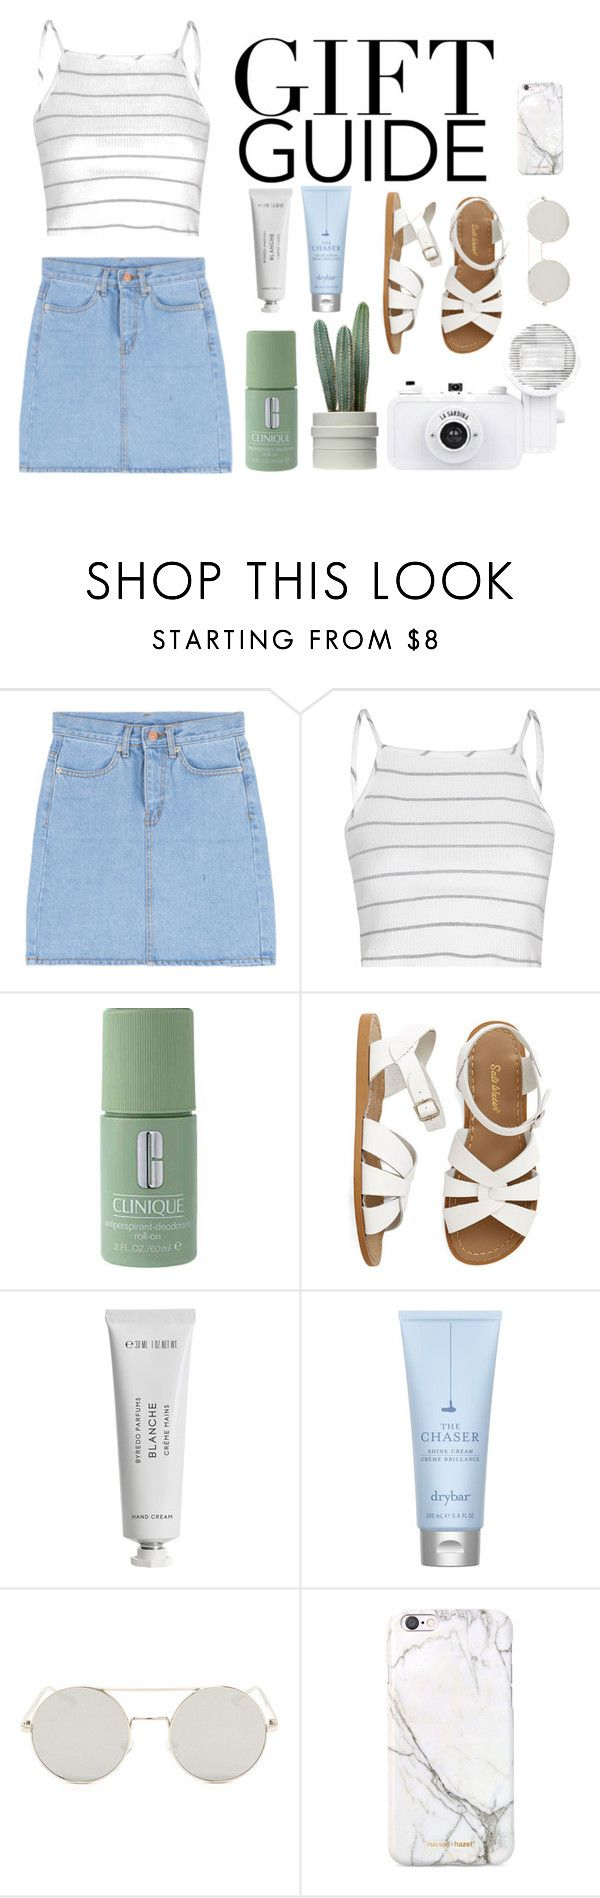 """Gift Guide"" by pastel-tumblr ❤ liked on Polyvore featuring Glamorous, Clinique, Salt Water Sandals, Byredo, Drybar, russell+hazel, gifts, guide and prezzies"